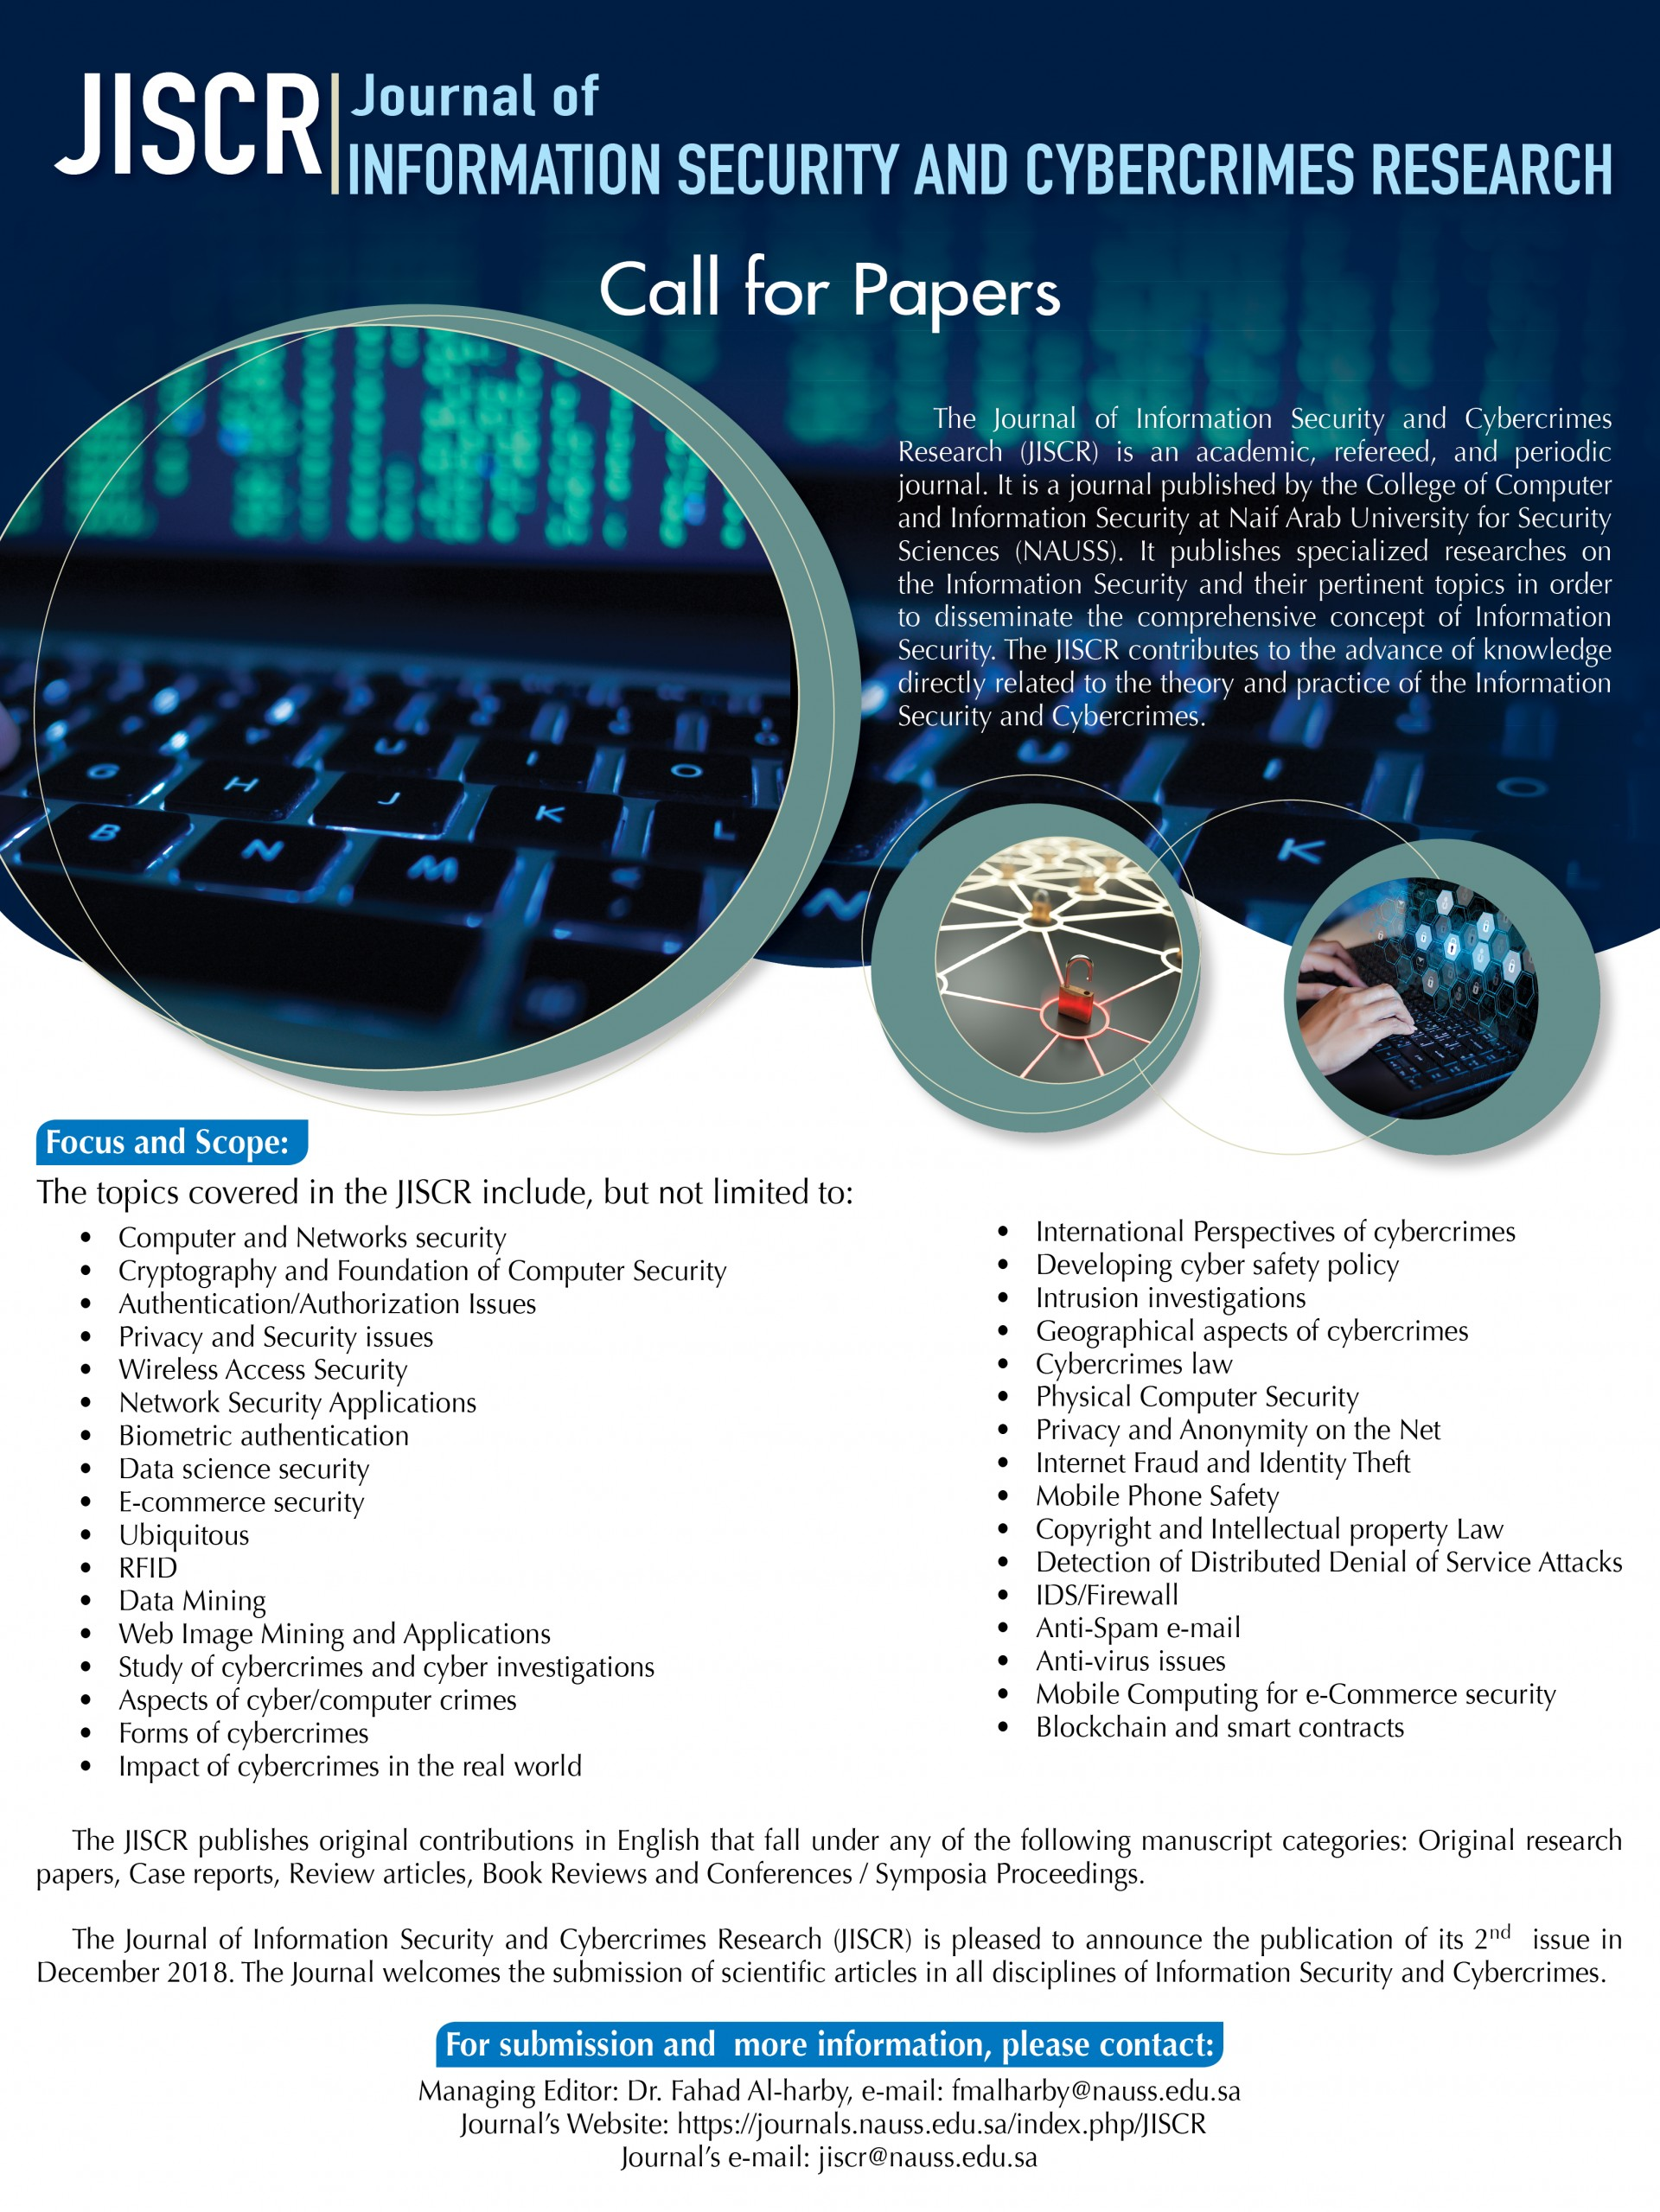 024 Call For December Cyber Security Research Dreaded Paper 2019 Papers 2018 1920